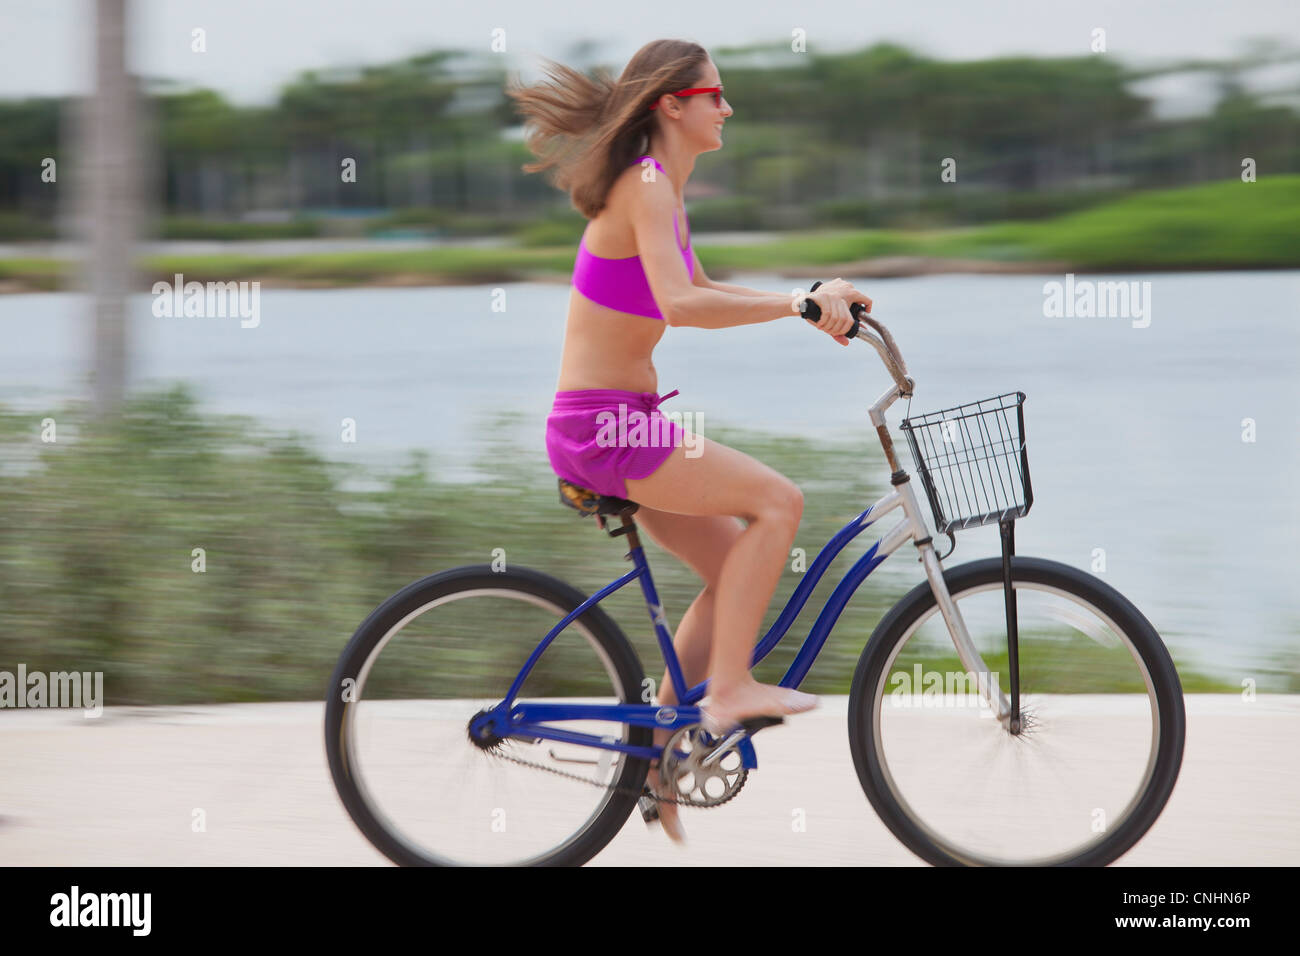 Exist? remarkable, Upskirt girls on bicycles think, that